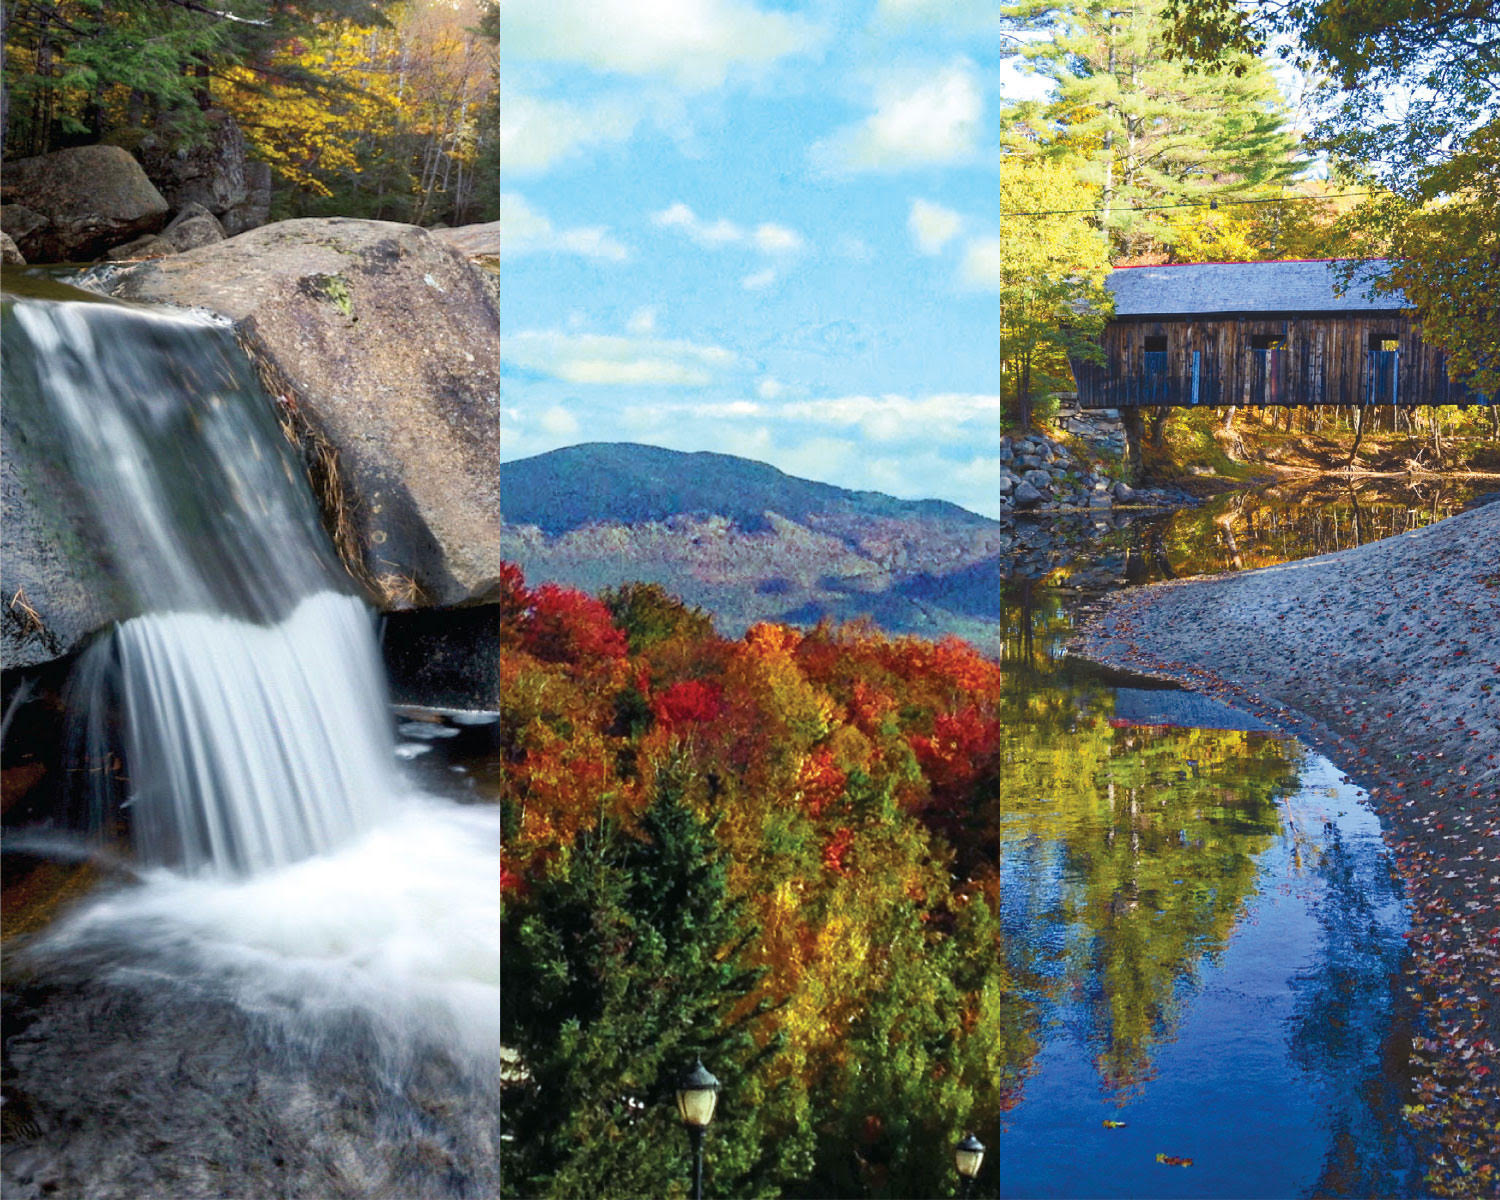 Fall Foliage Workshop in Western Maine: Waterfalls & Covered Bridges